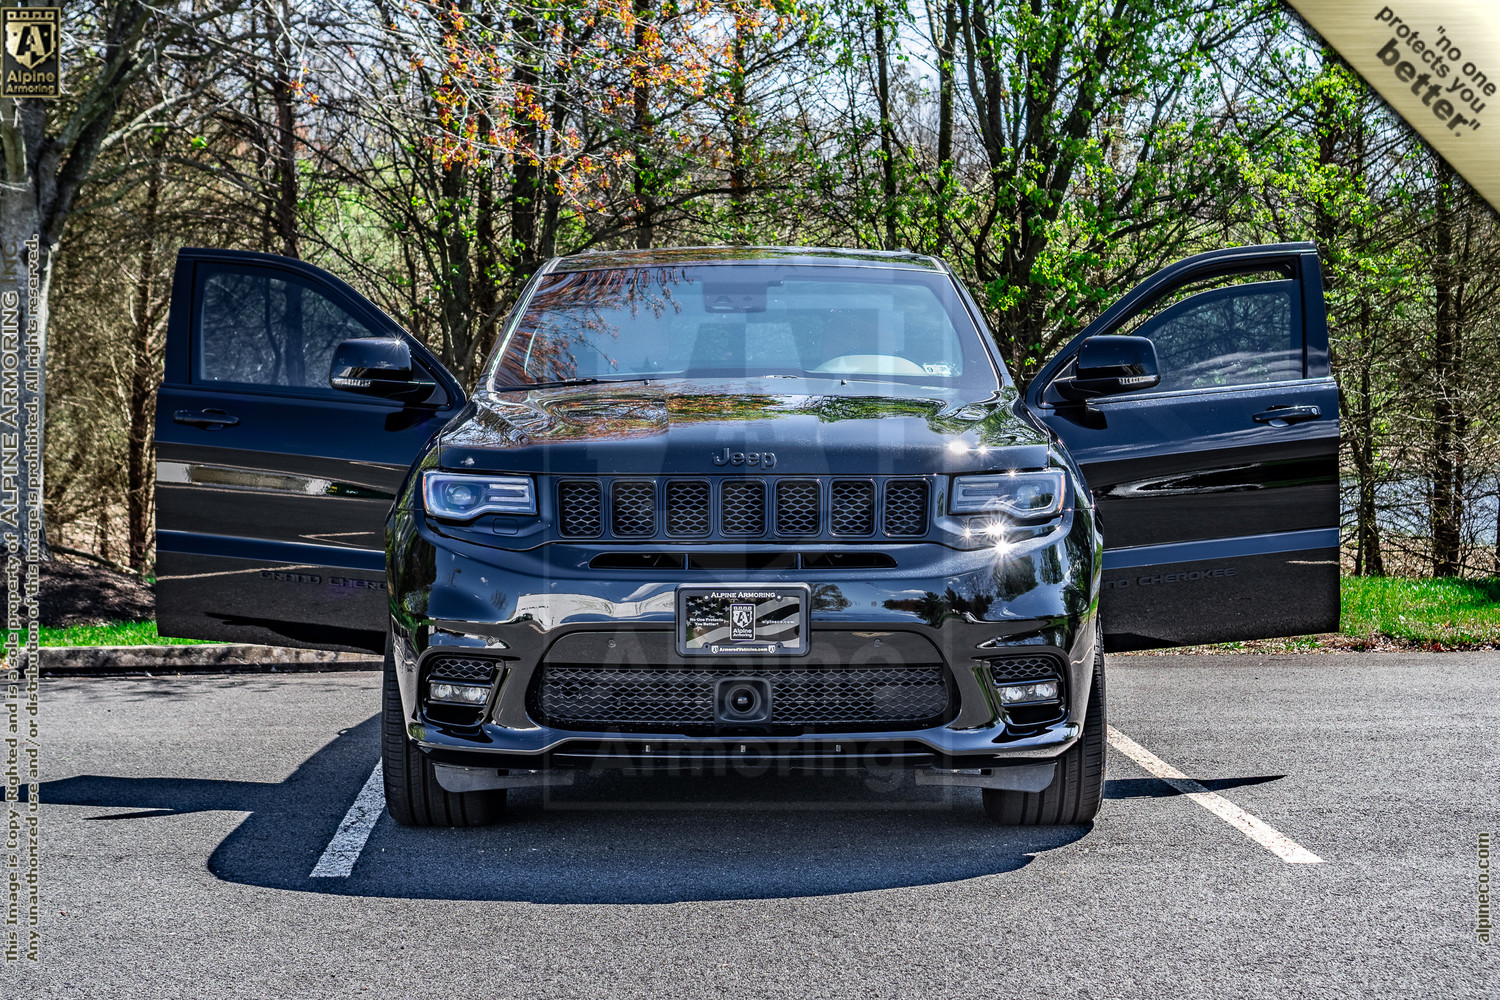 New Inventory armored Jeep Grand Cherokee SRT Level A9/B6+  Exterior & Interior Images VIN:7542